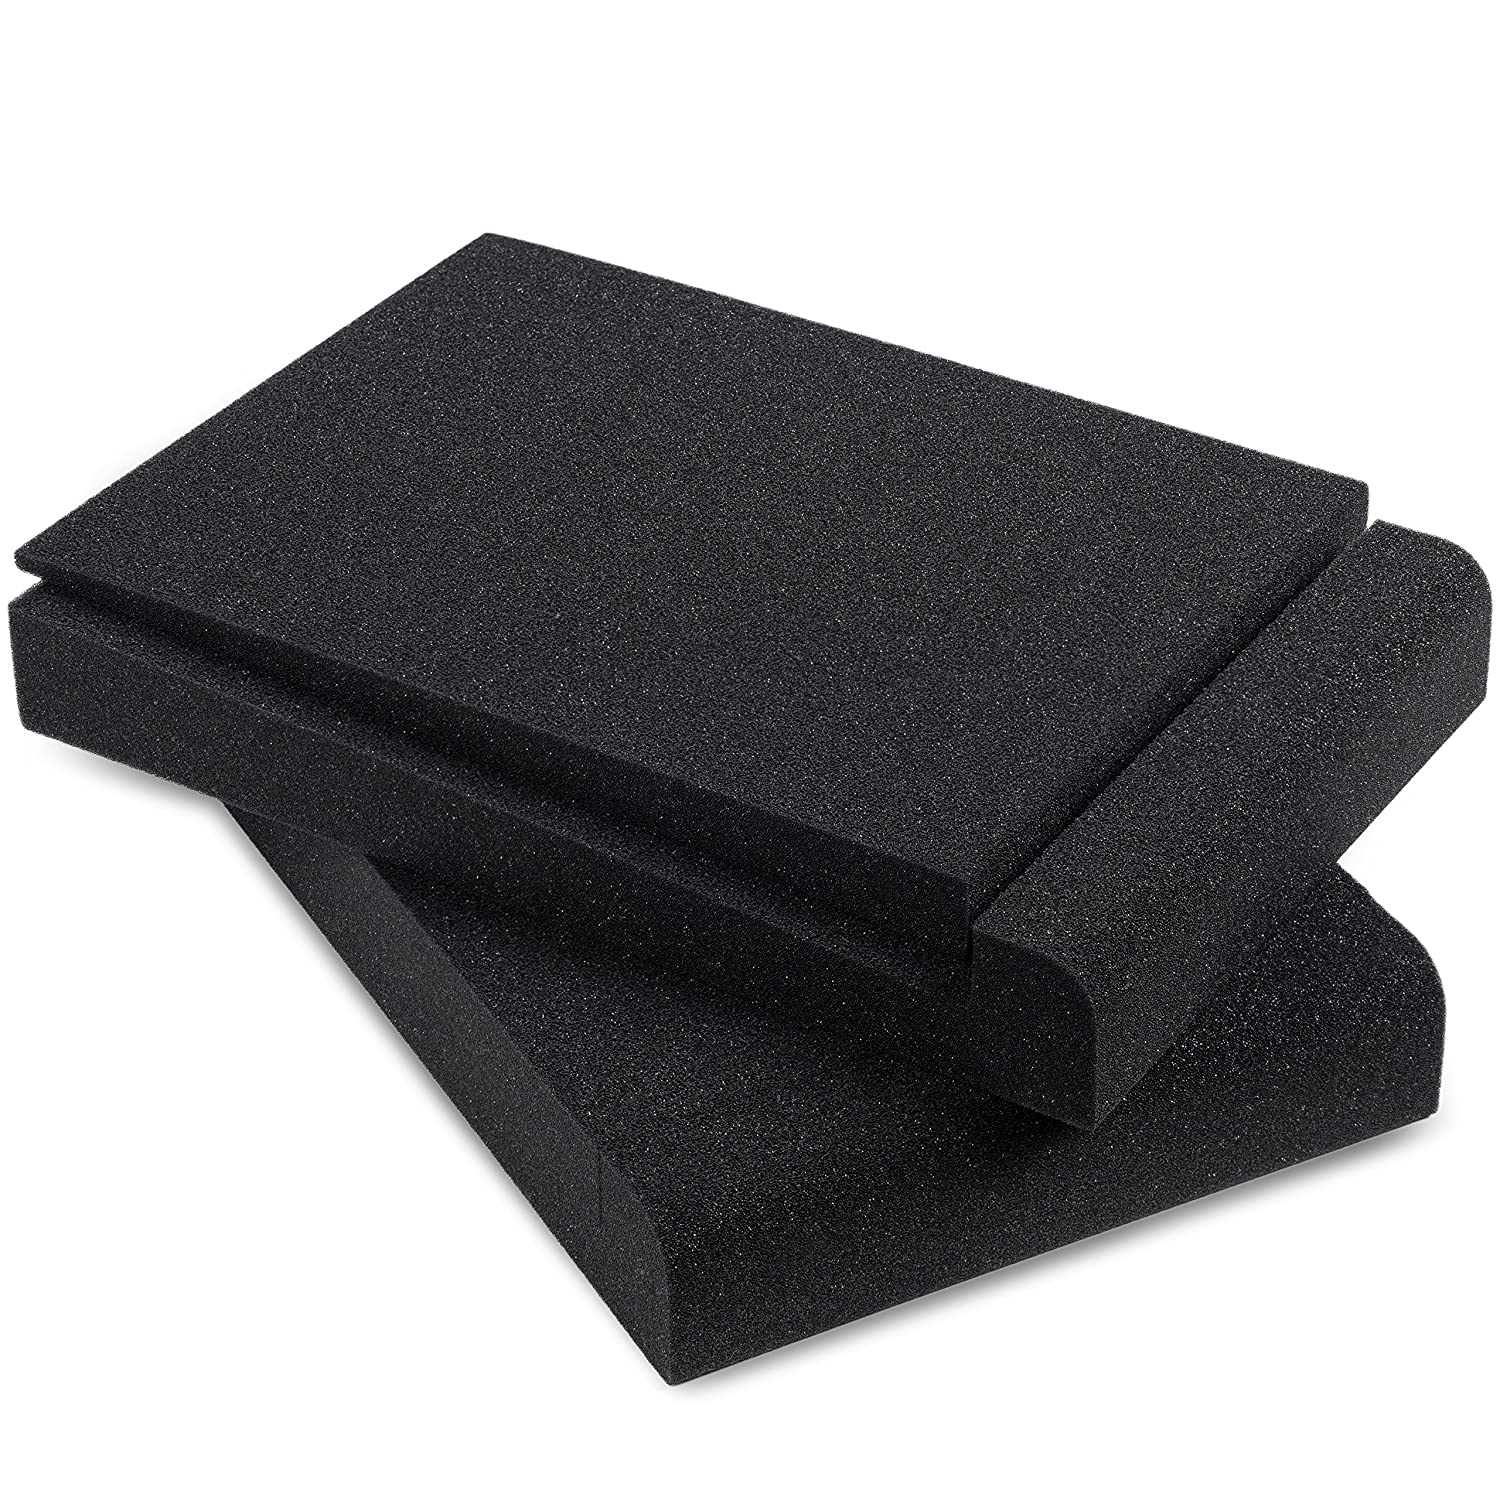 Sound Addicted - Studio Monitor Isolation Pads for 5'' Inch Monitors, Pair of Two High Density Acoustic Foam which Fits most Speaker Stands 4336353363